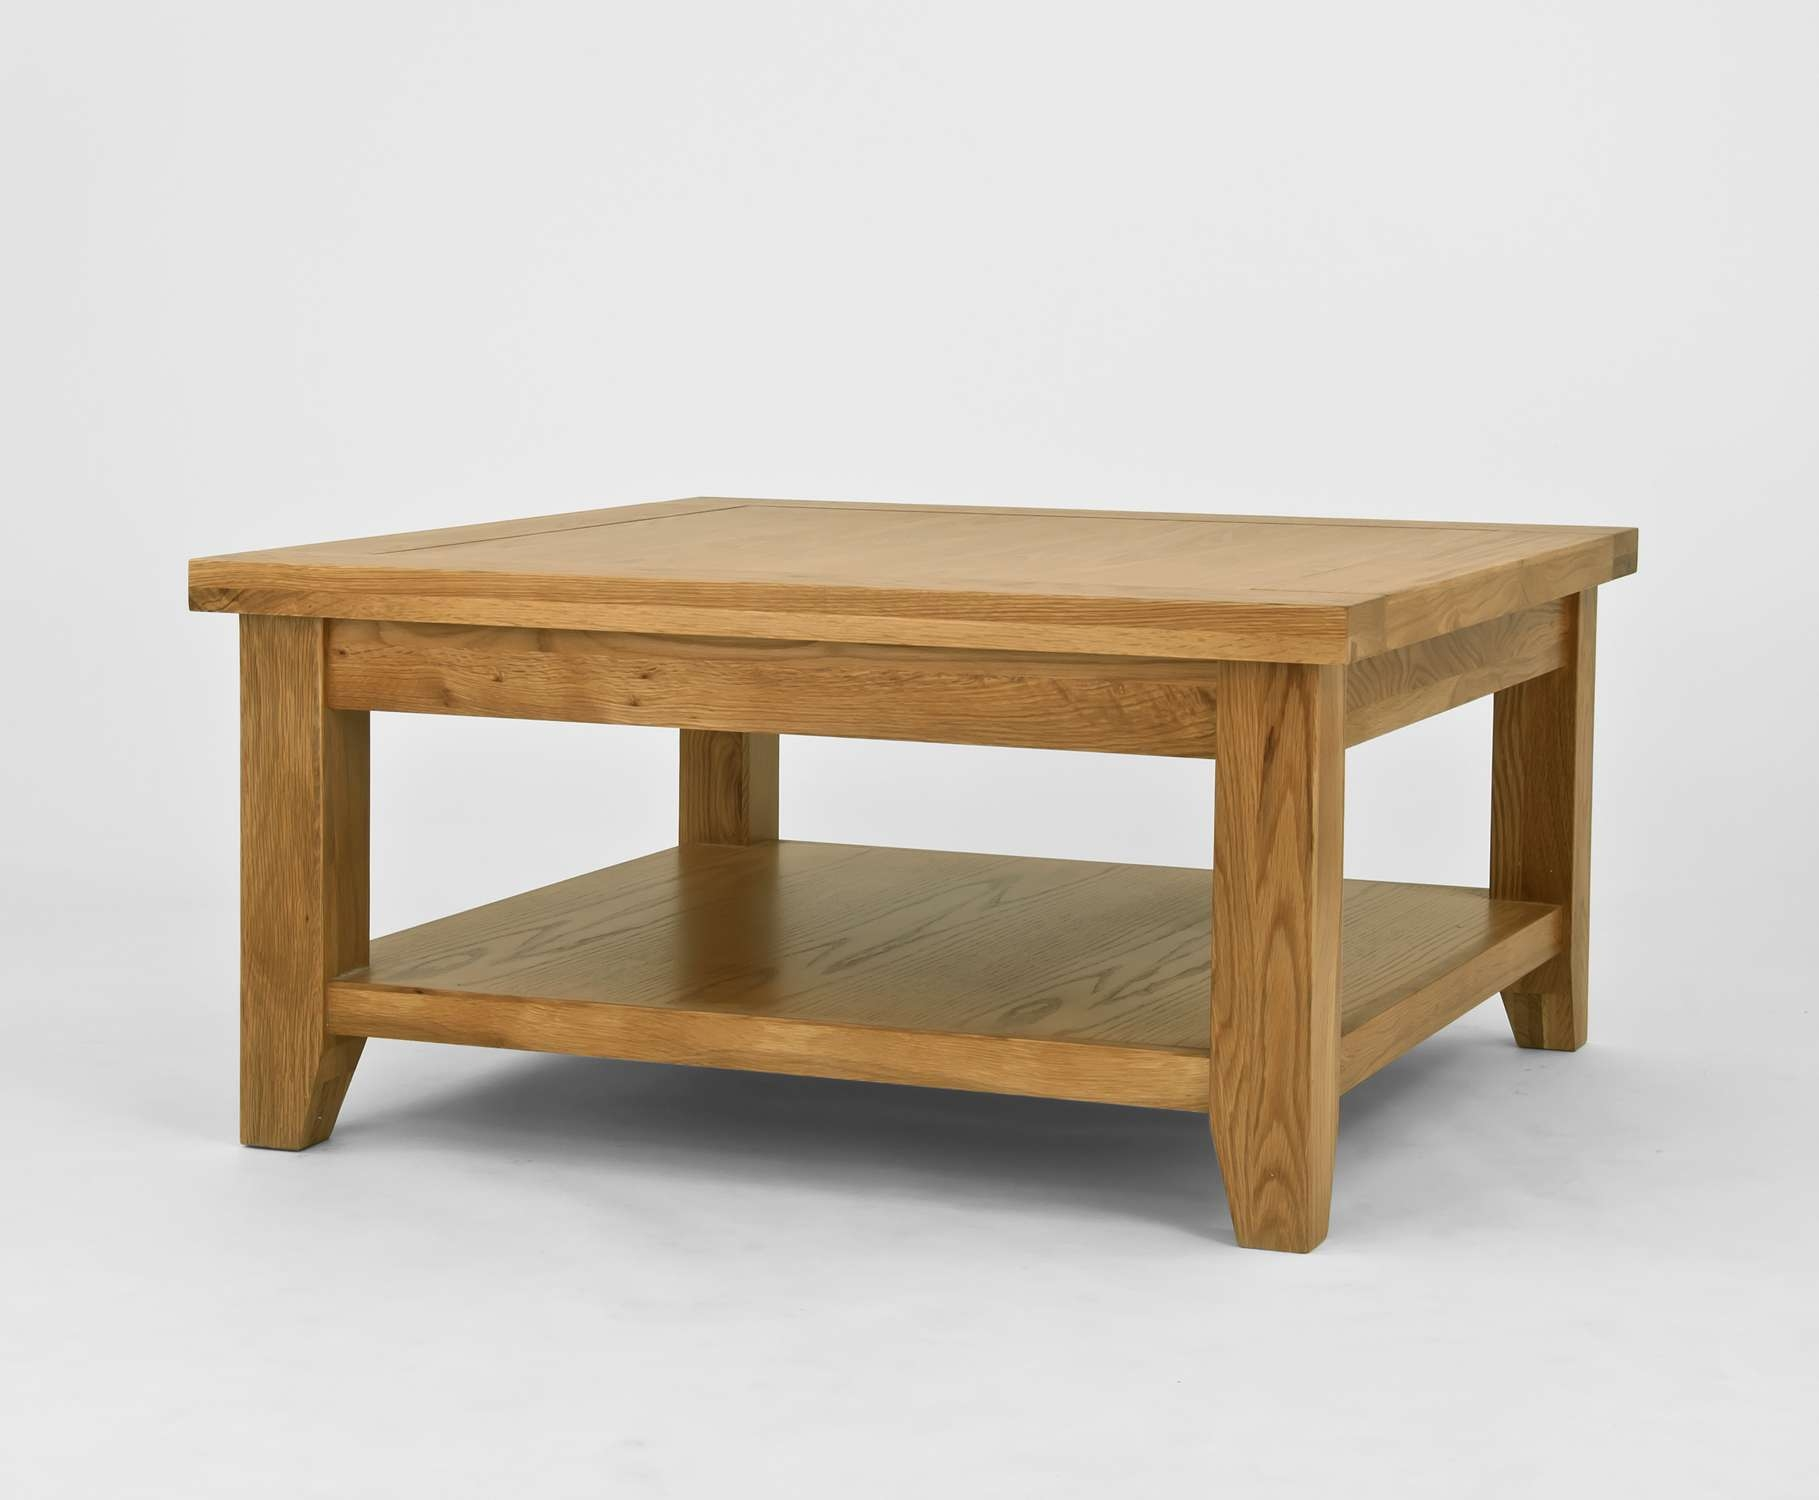 Cottage Light Solid Oak Coffee Table Oak Furniture King With Oak Regarding Fashionable Oak Wood Coffee Tables (View 5 of 20)